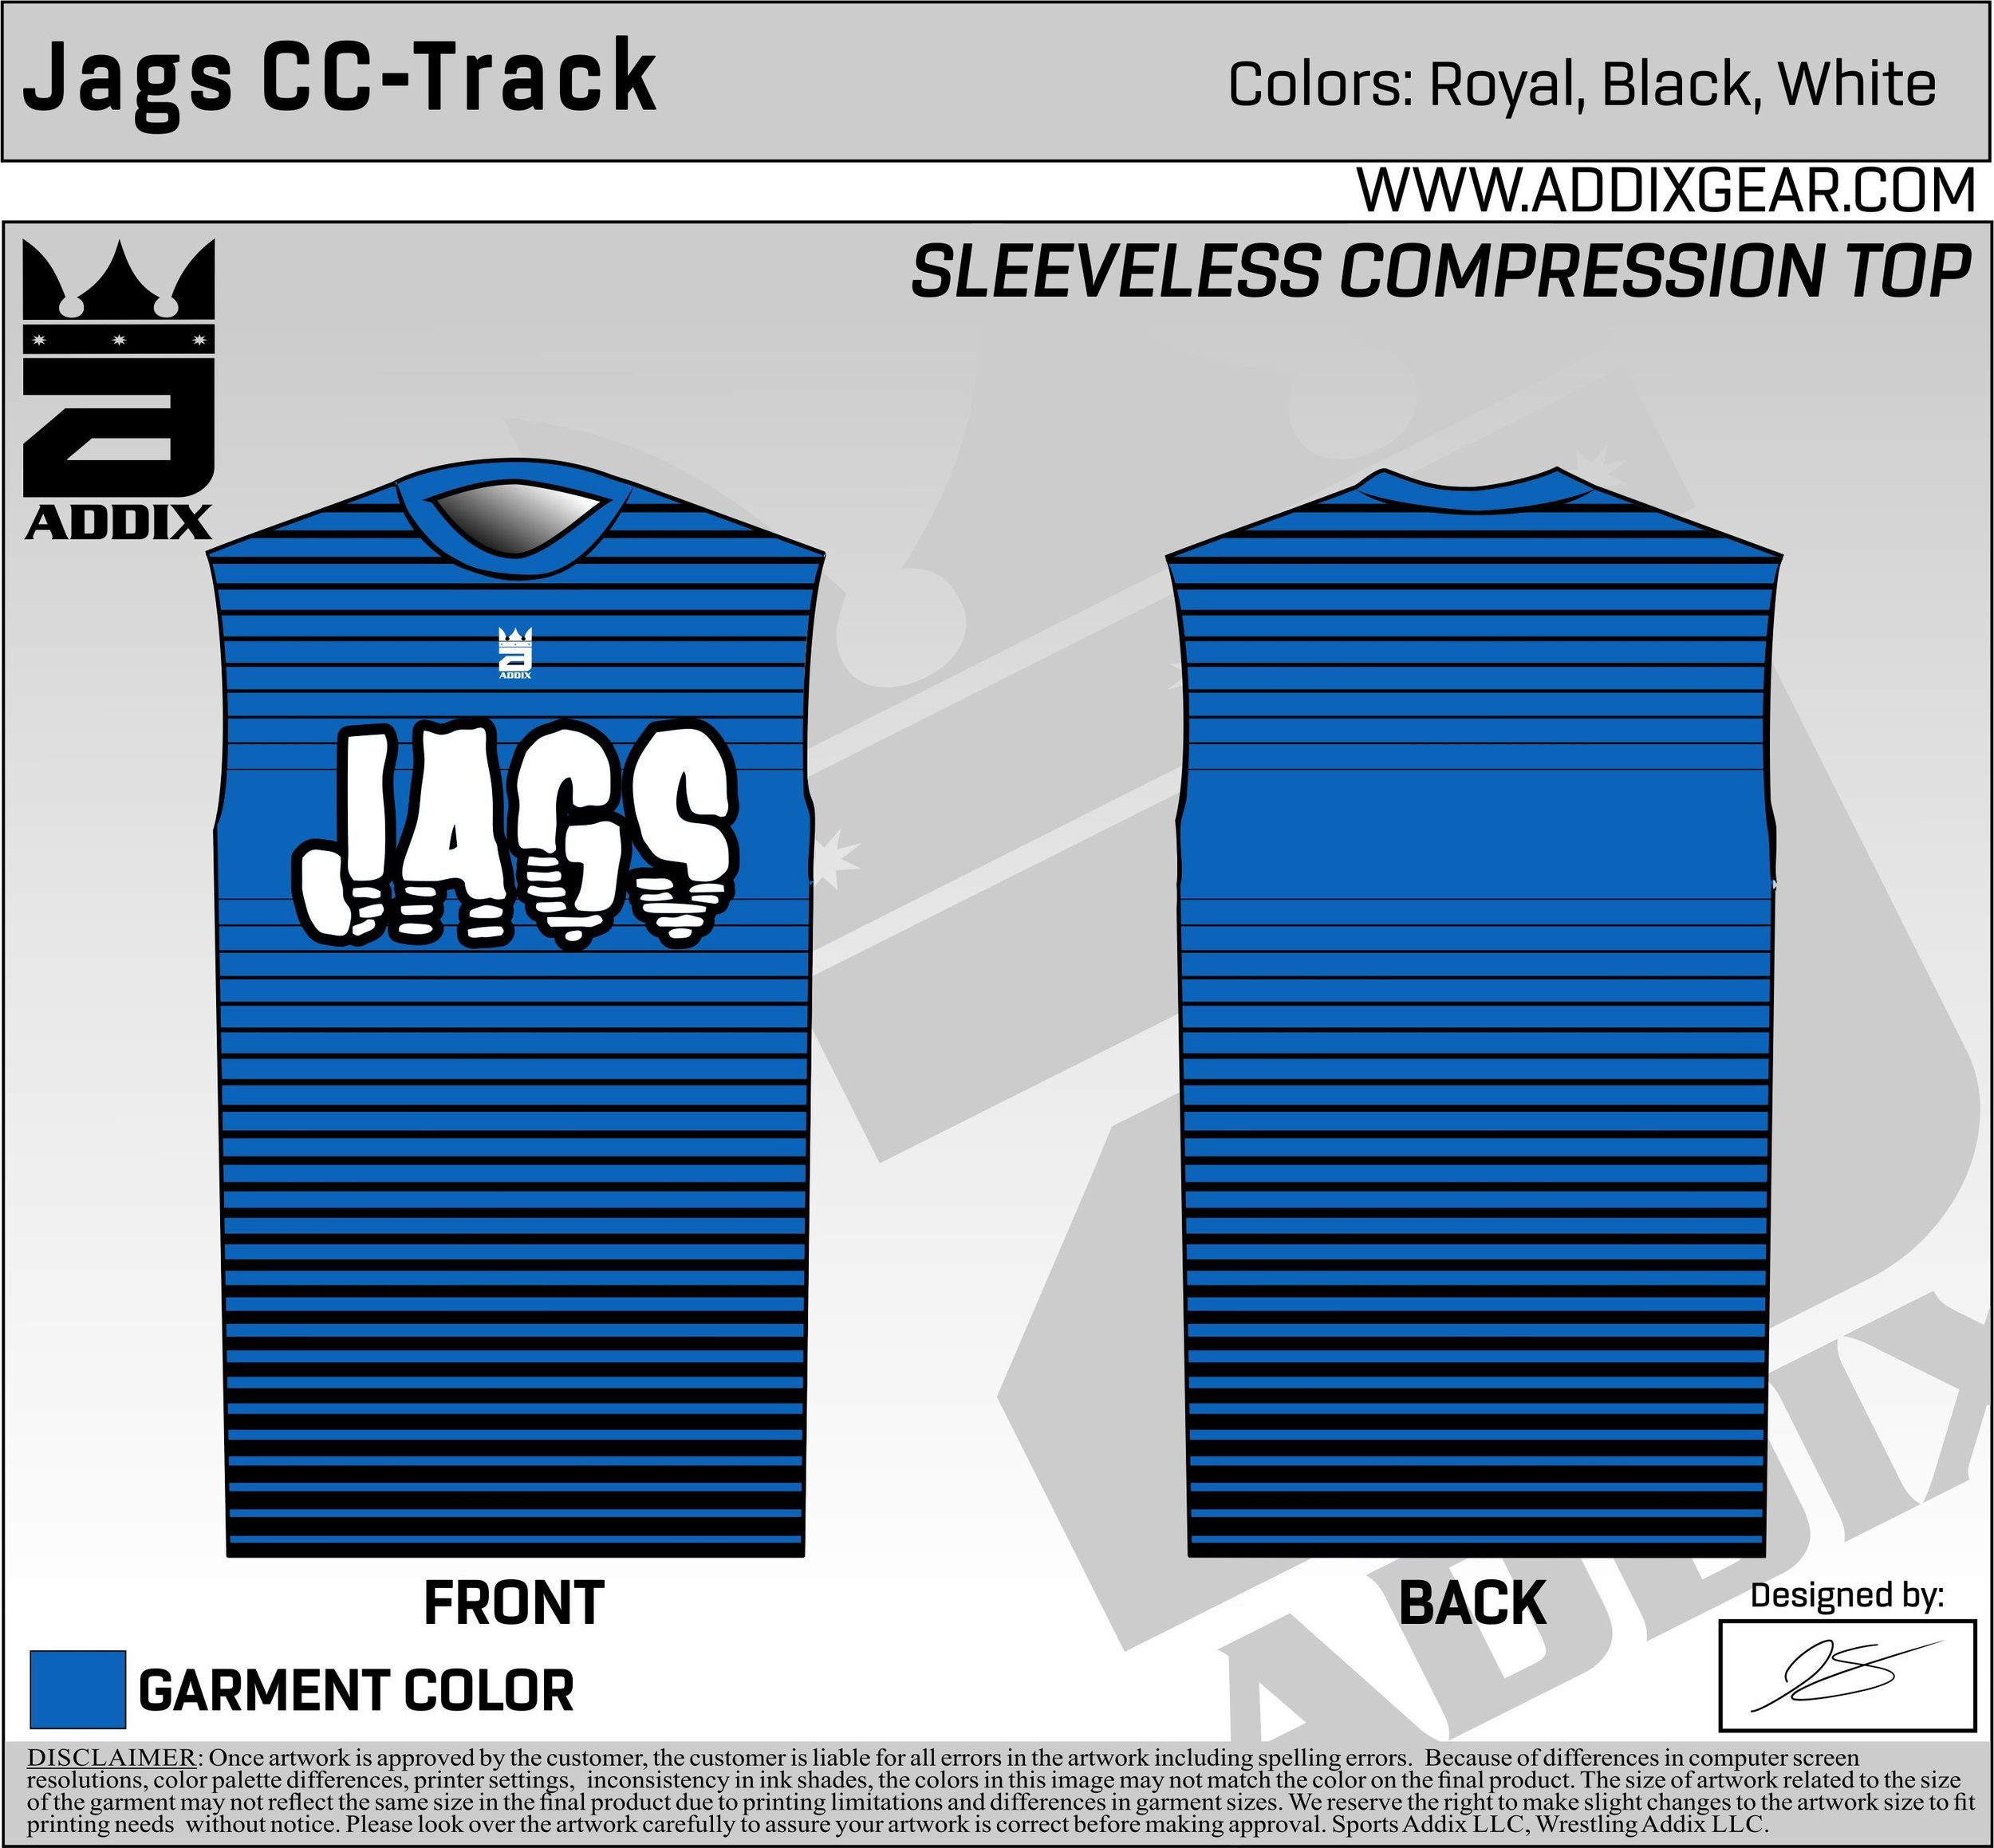 Jags CC-Track_2017_11-28_JE_Sleeveless Comp Top.jpg